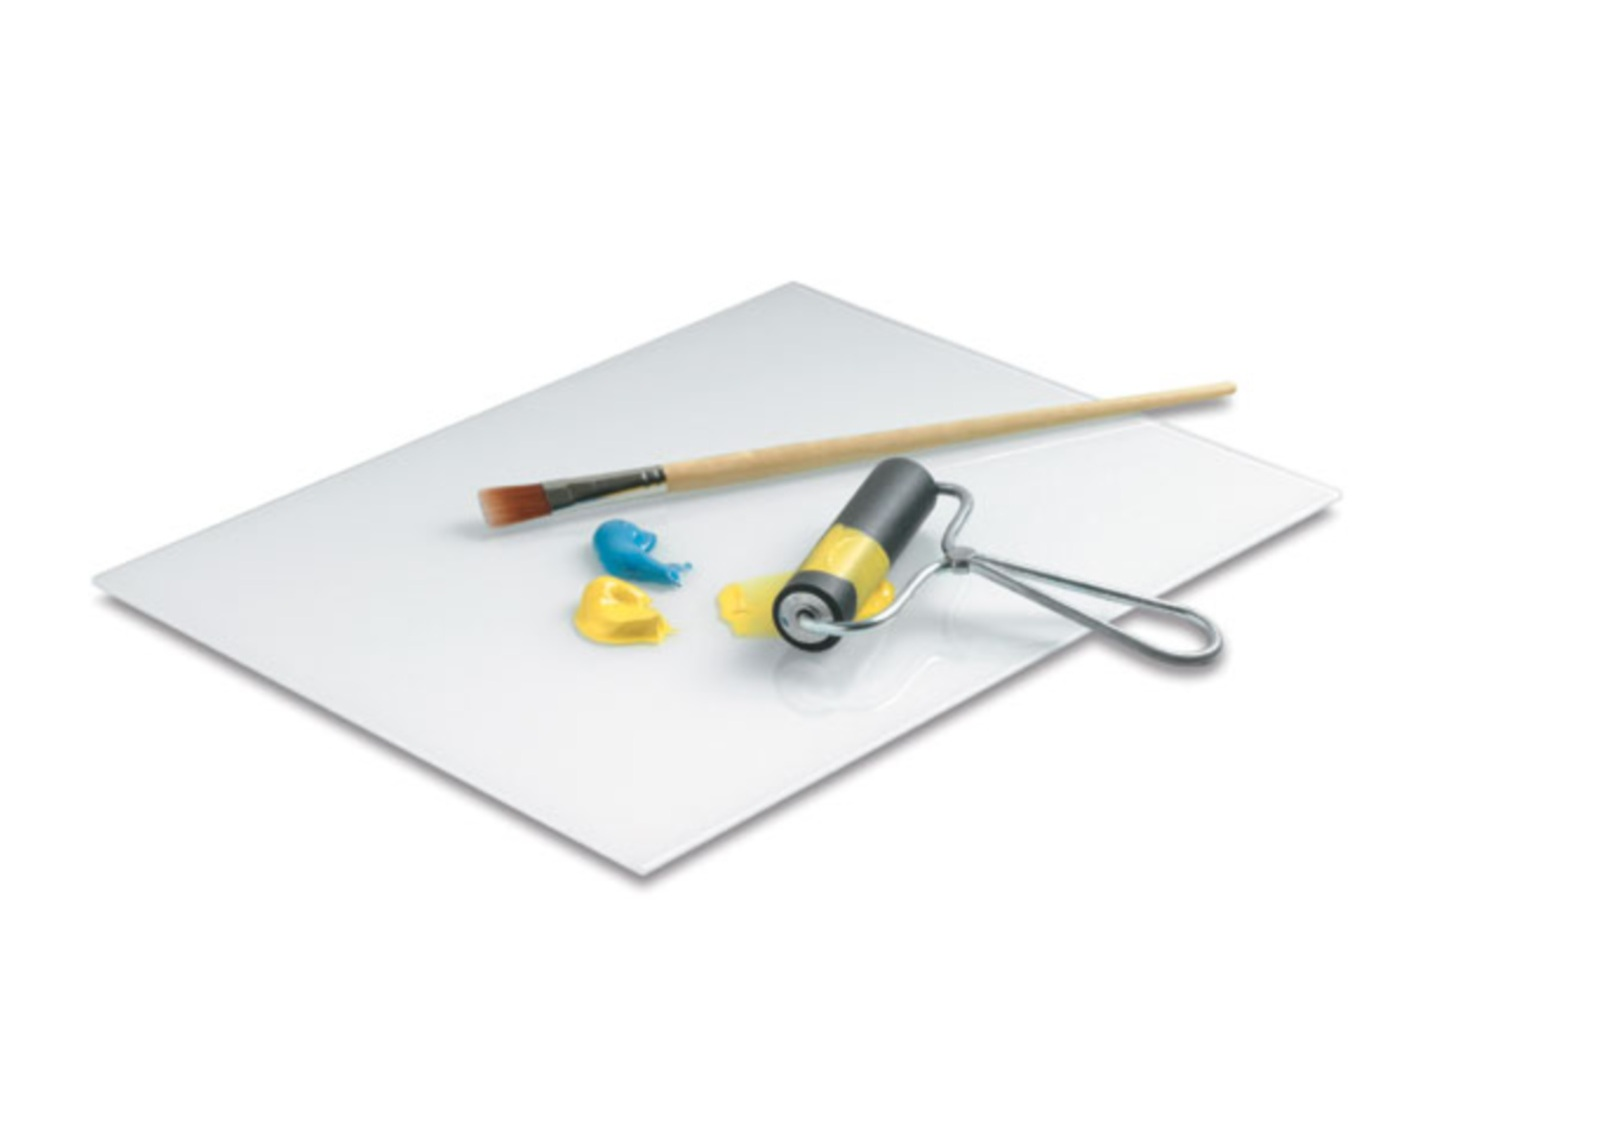 Amaco Paragona Glass Artist Palette - This is a pricier option, but works well if you plan on making large pieces that require a wide brayer.